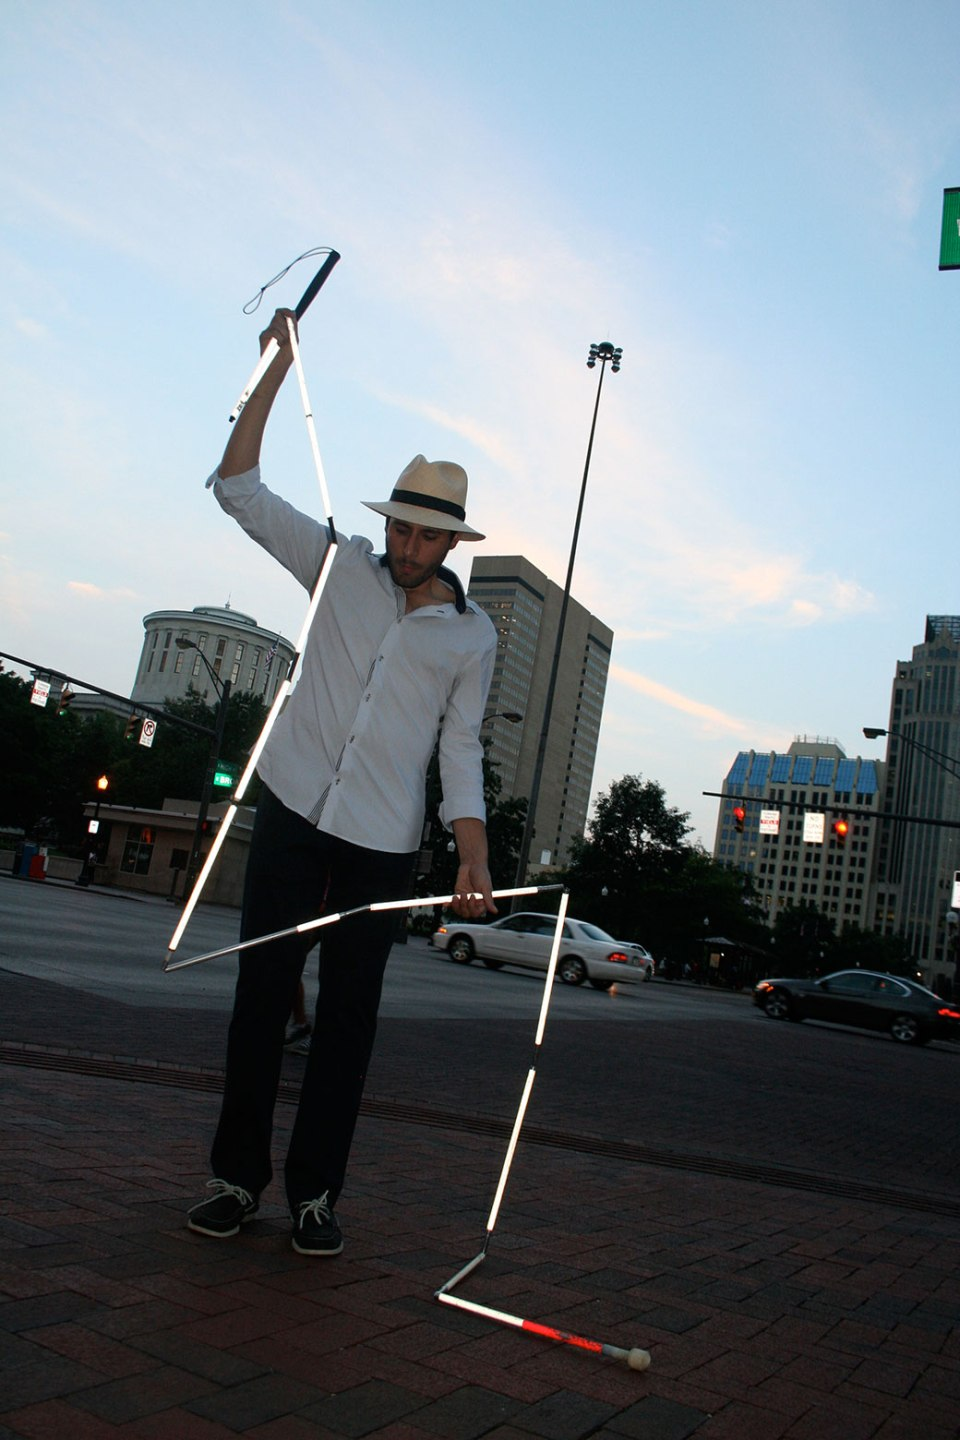 Carmen Papalia. Long Cane, 2009. Performance object; dimensions variable. Courtesy Kristin Rochelle Lantz.